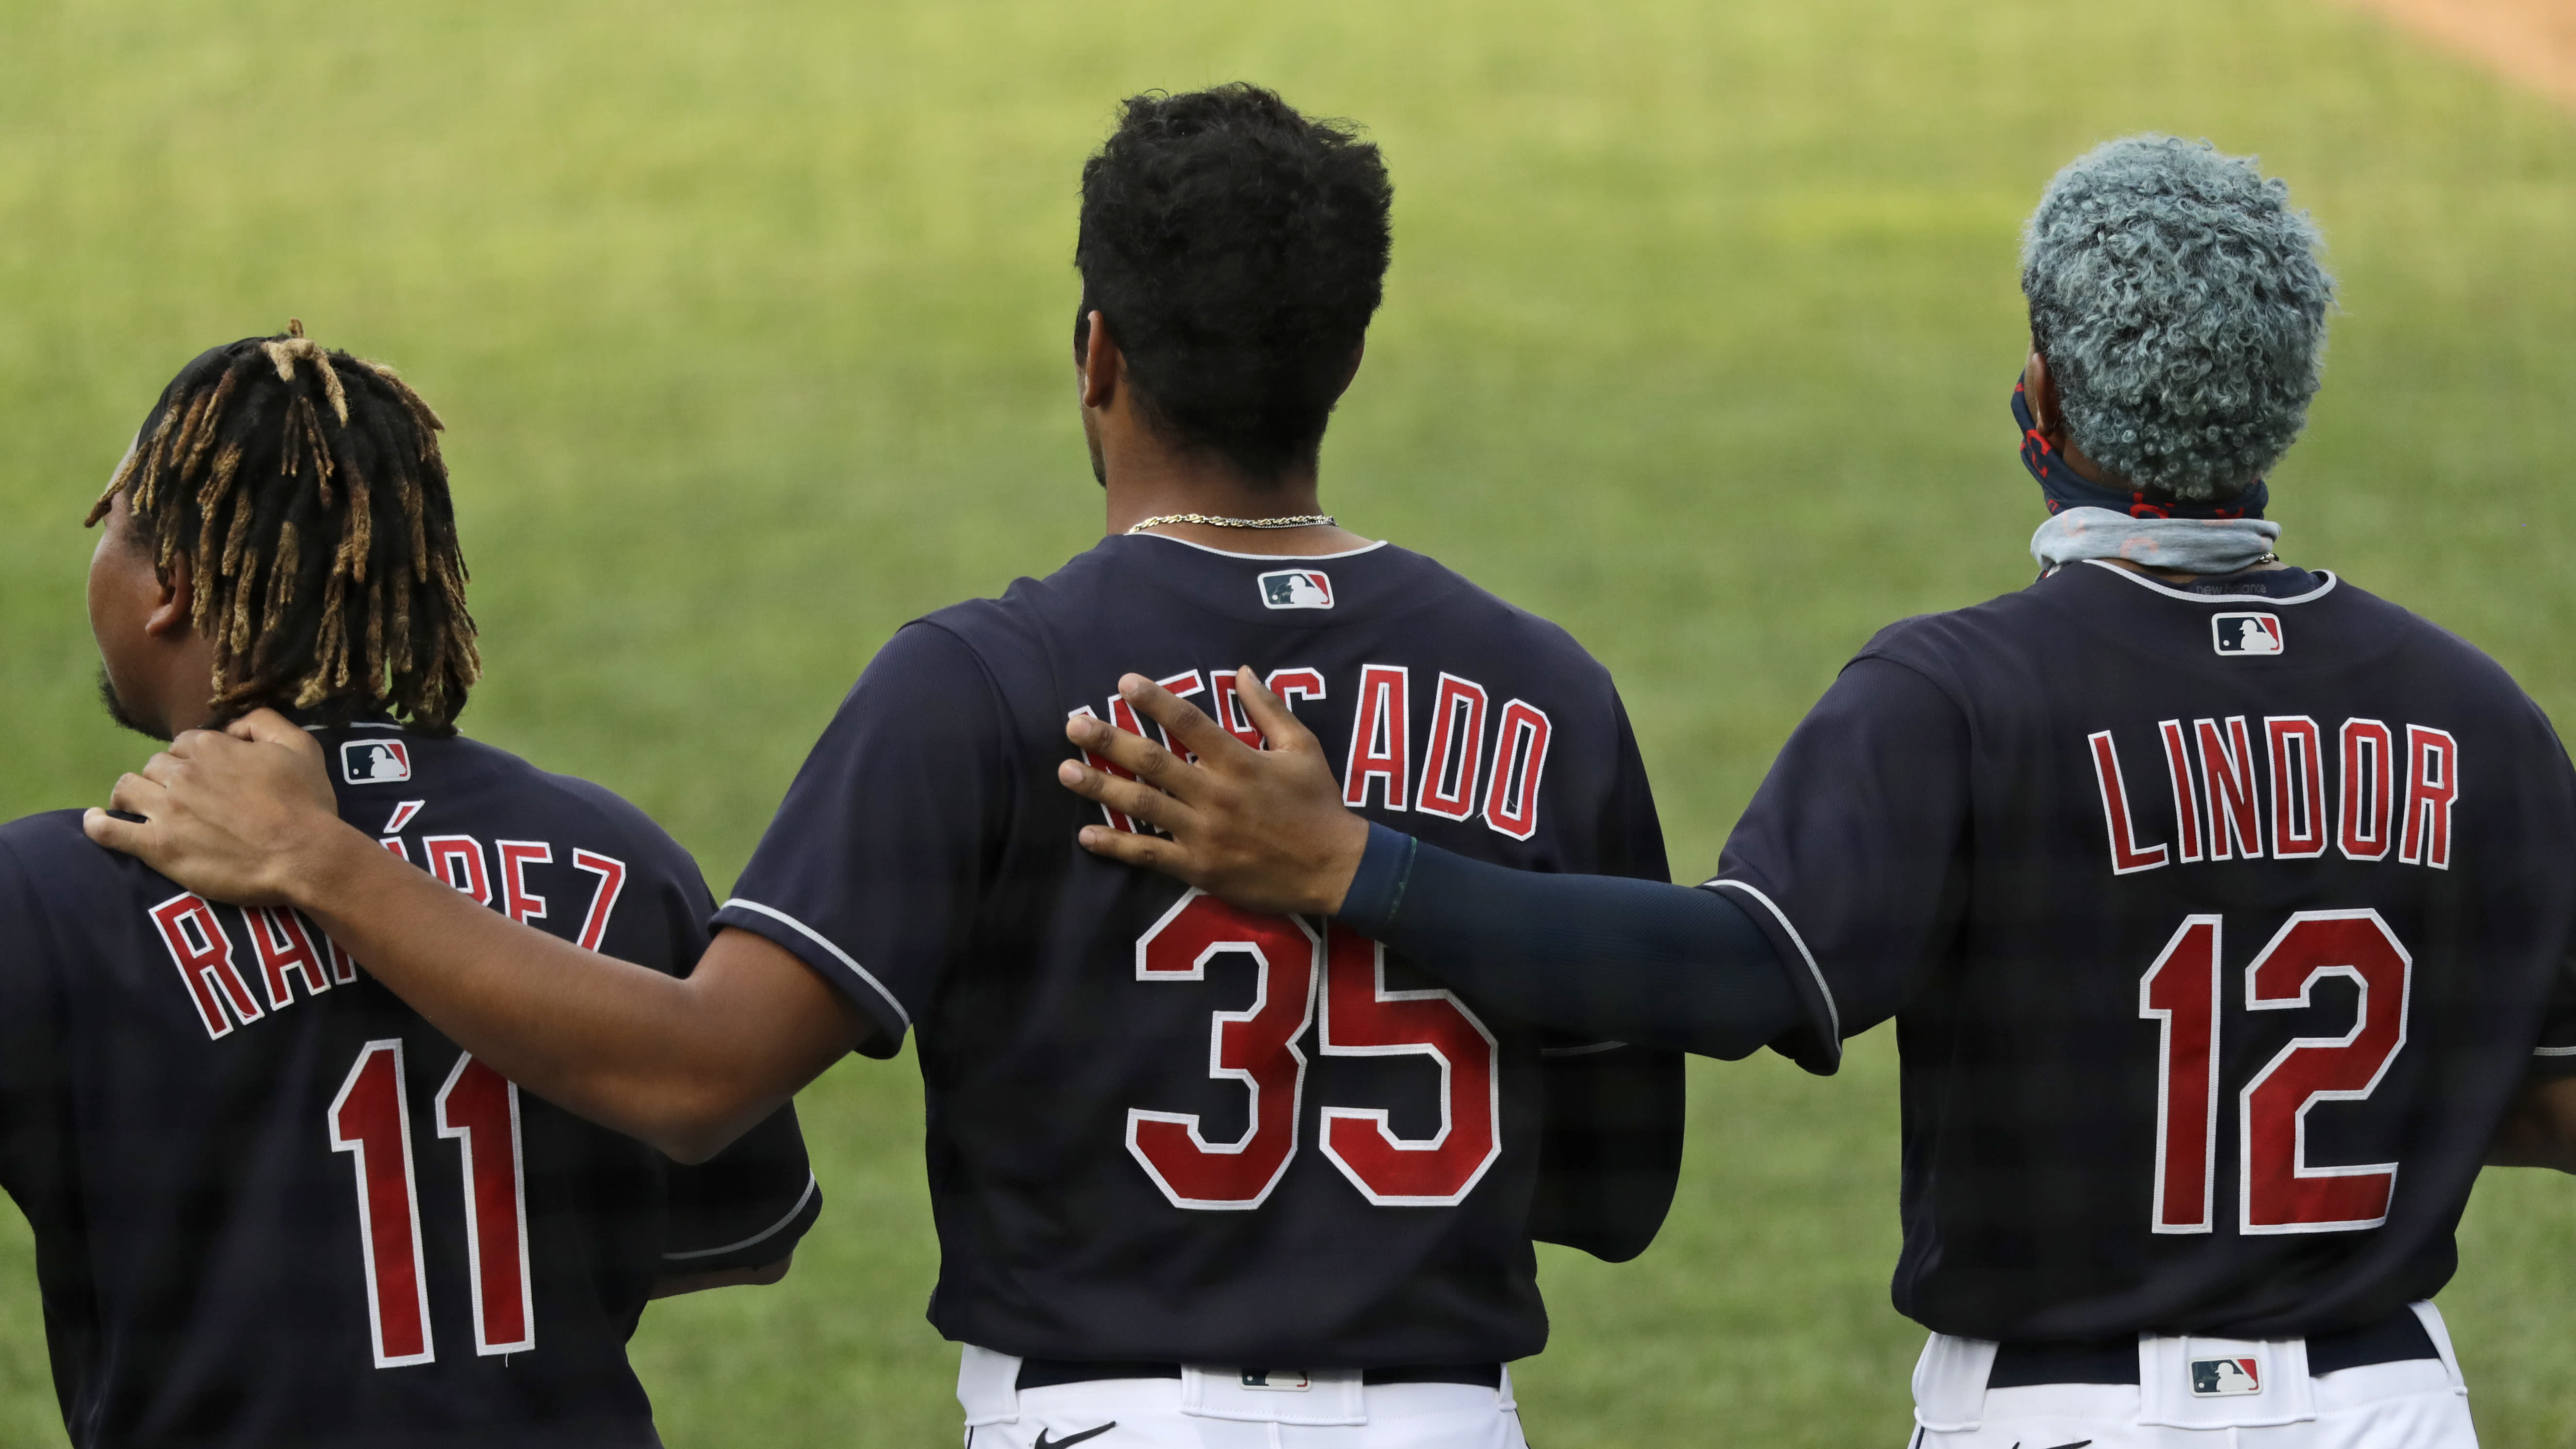 Members of the Cleveland Indians stand for the National Anthem before a preseason baseball game against the Pittsburgh Pirates, Monday, July 20, 2020, in Cleveland. (AP Photo/Tony Dejak)